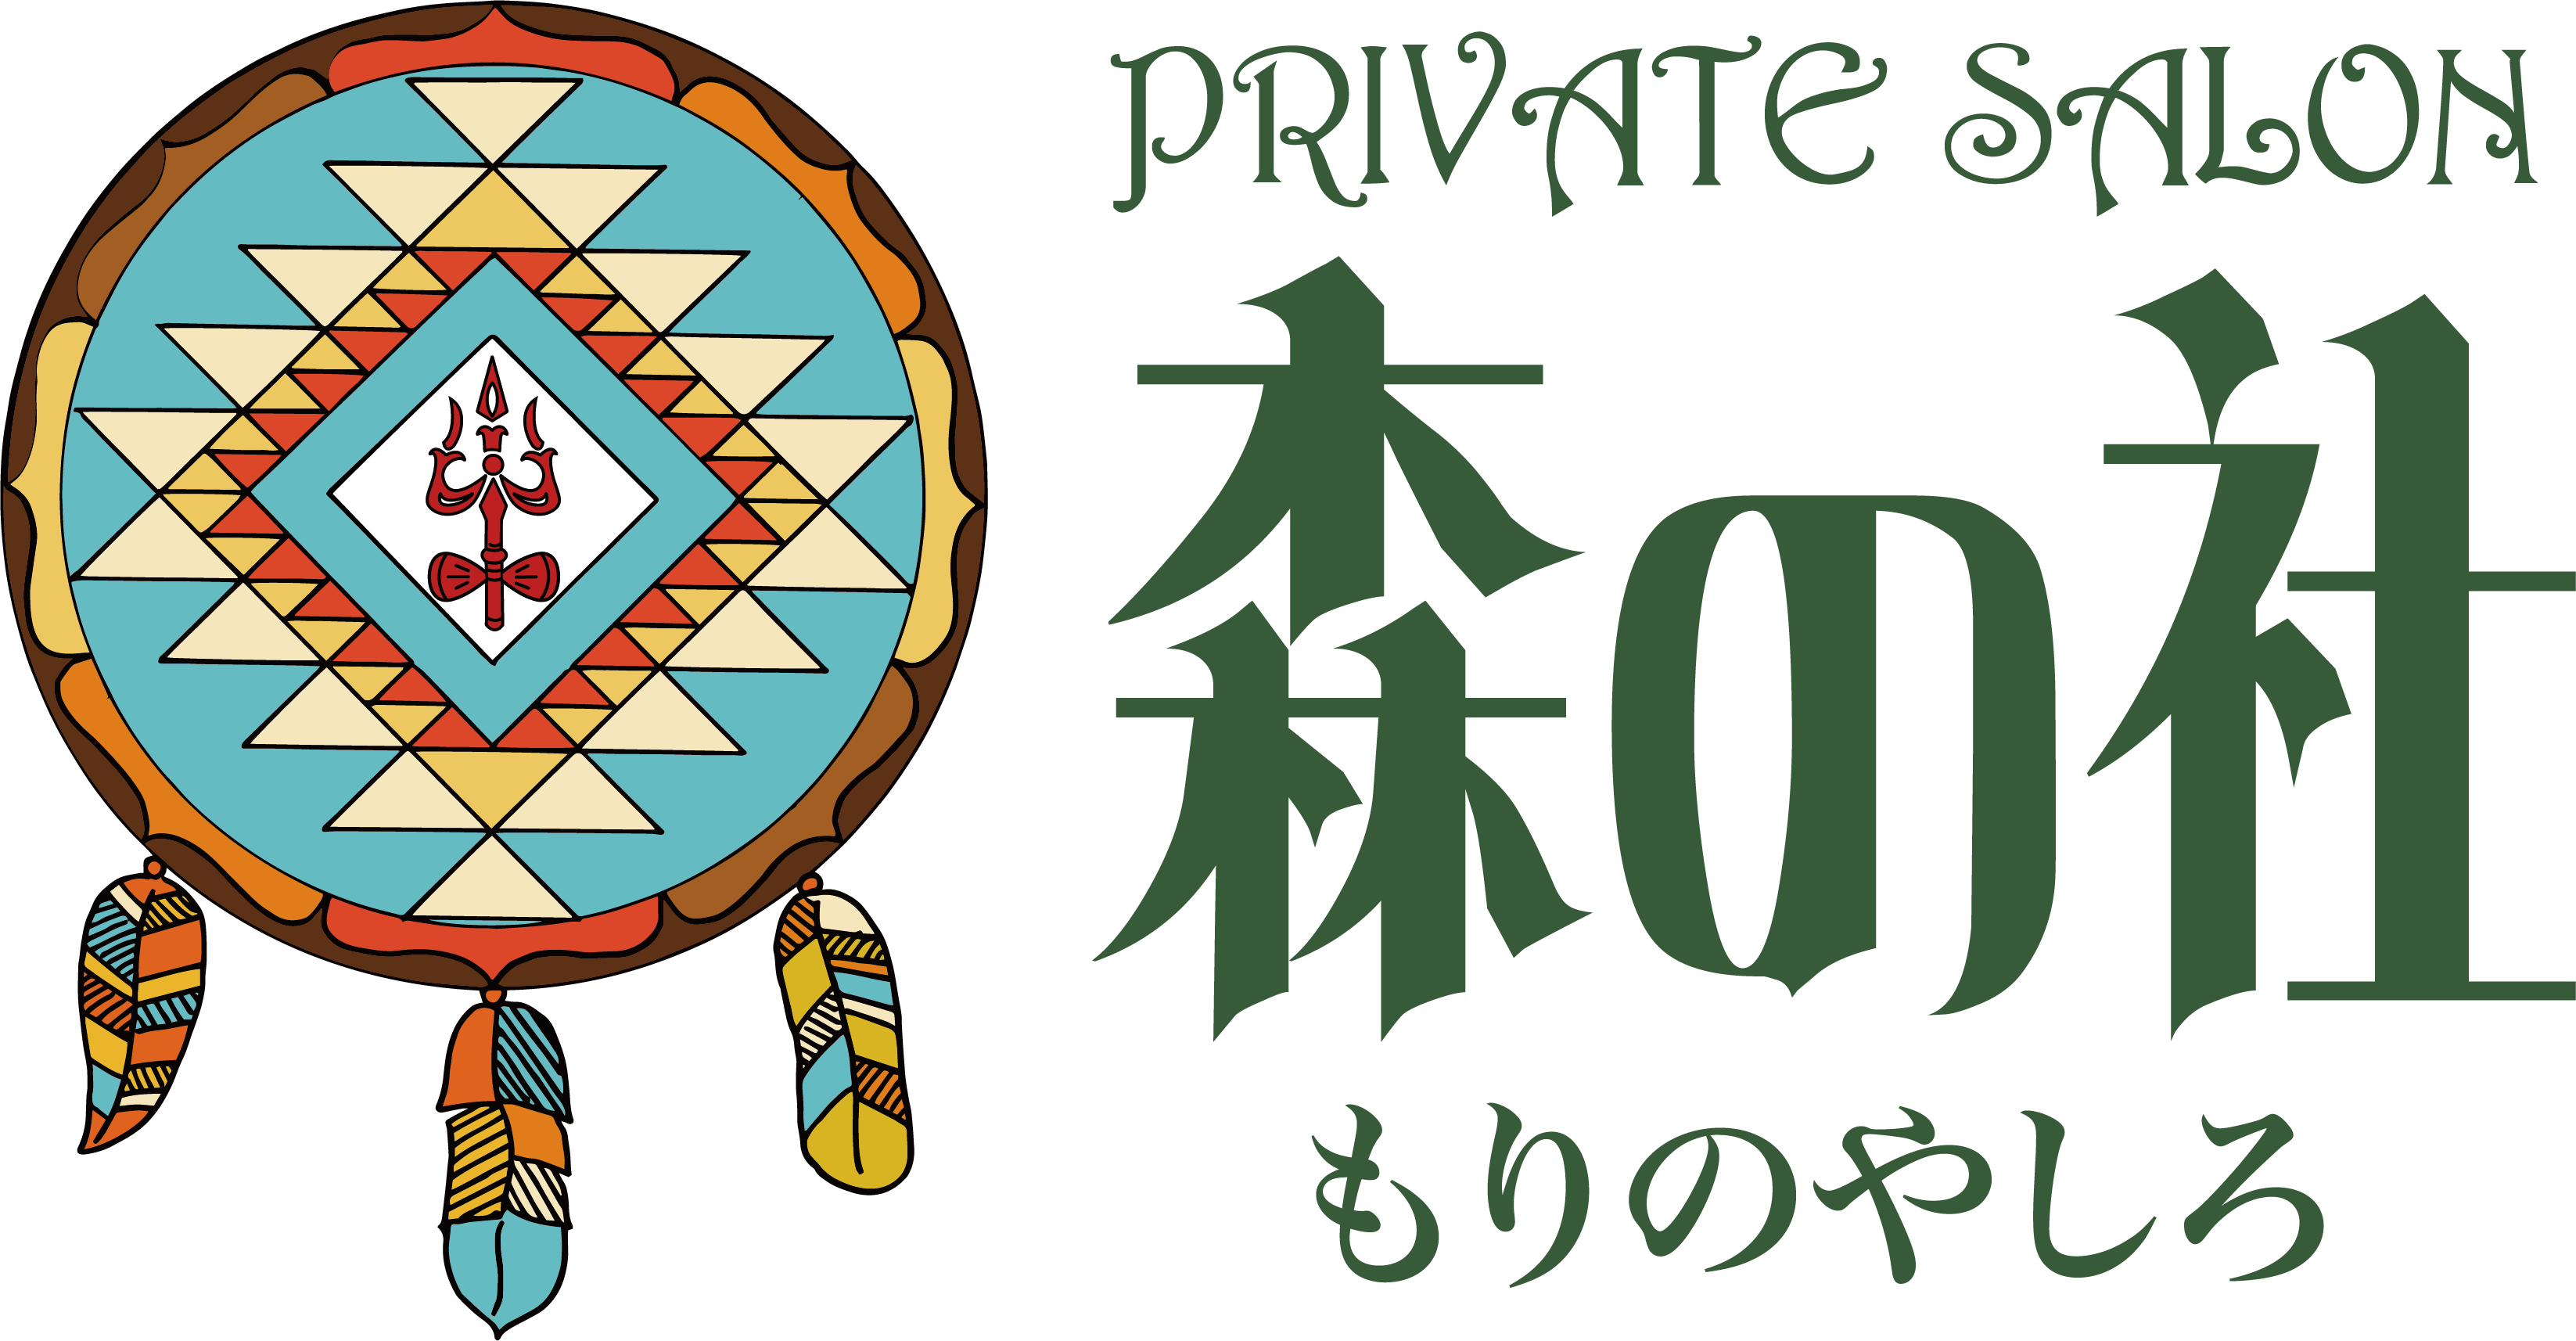 privatesalon 森の社